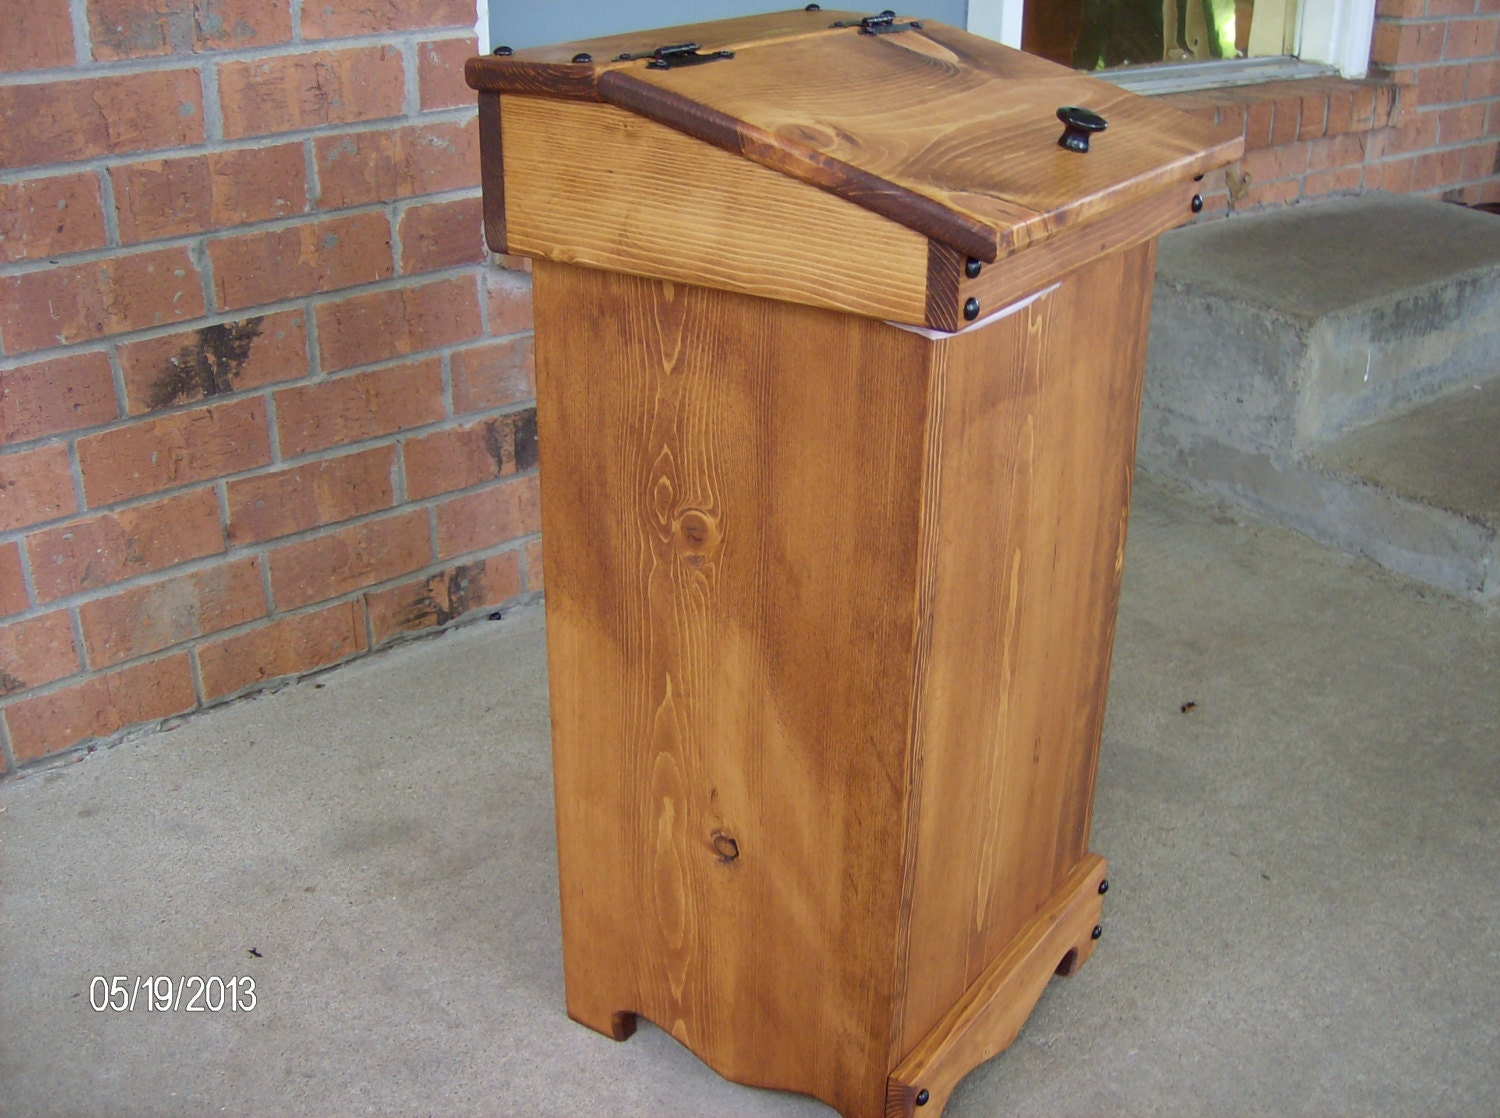 Wood wooden trash can bin New handcrafted by jmlwoods on Etsy